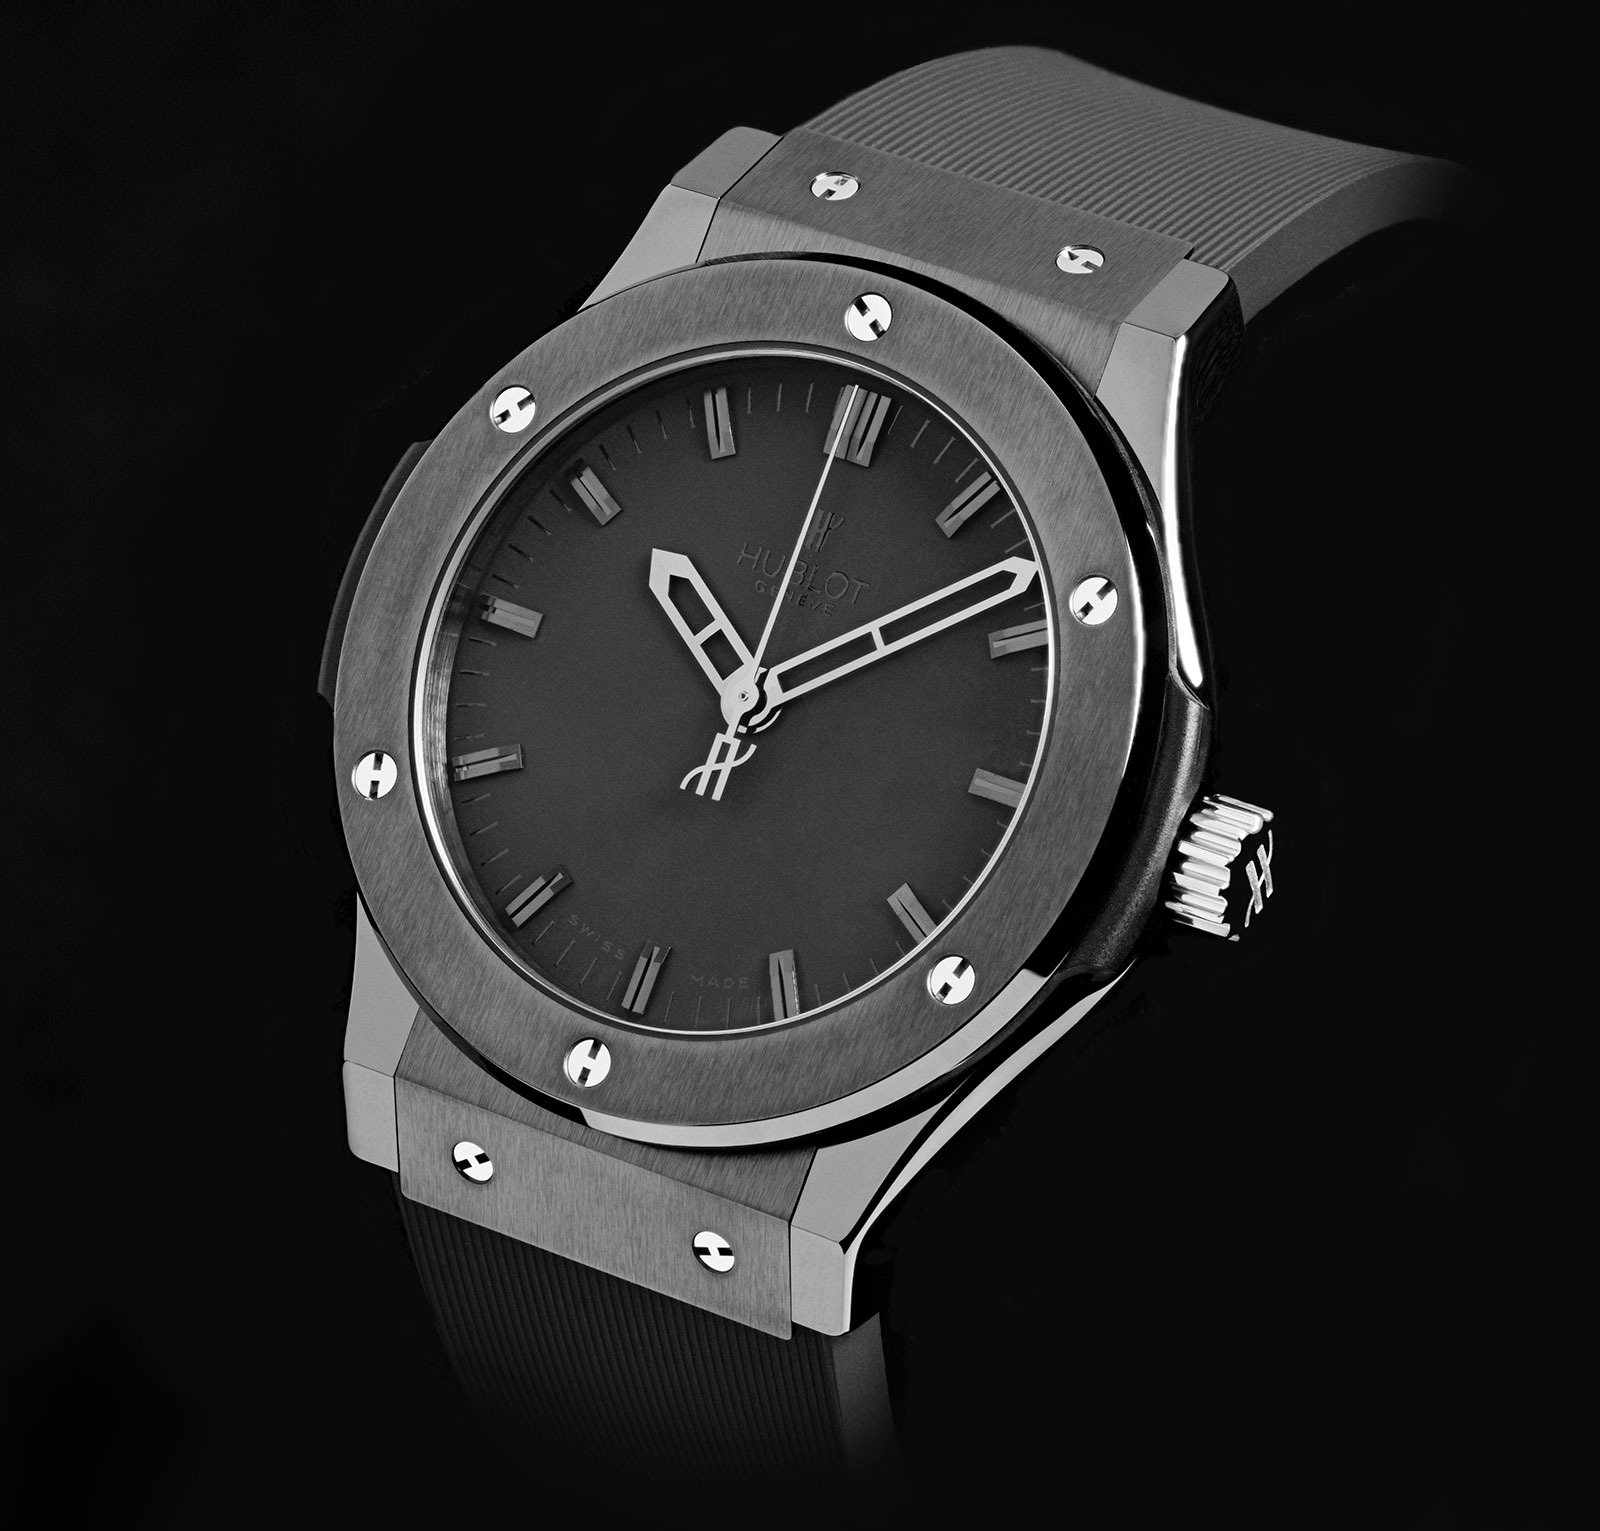 Hublot Classic Fusion All Black Kidz Horizon 2